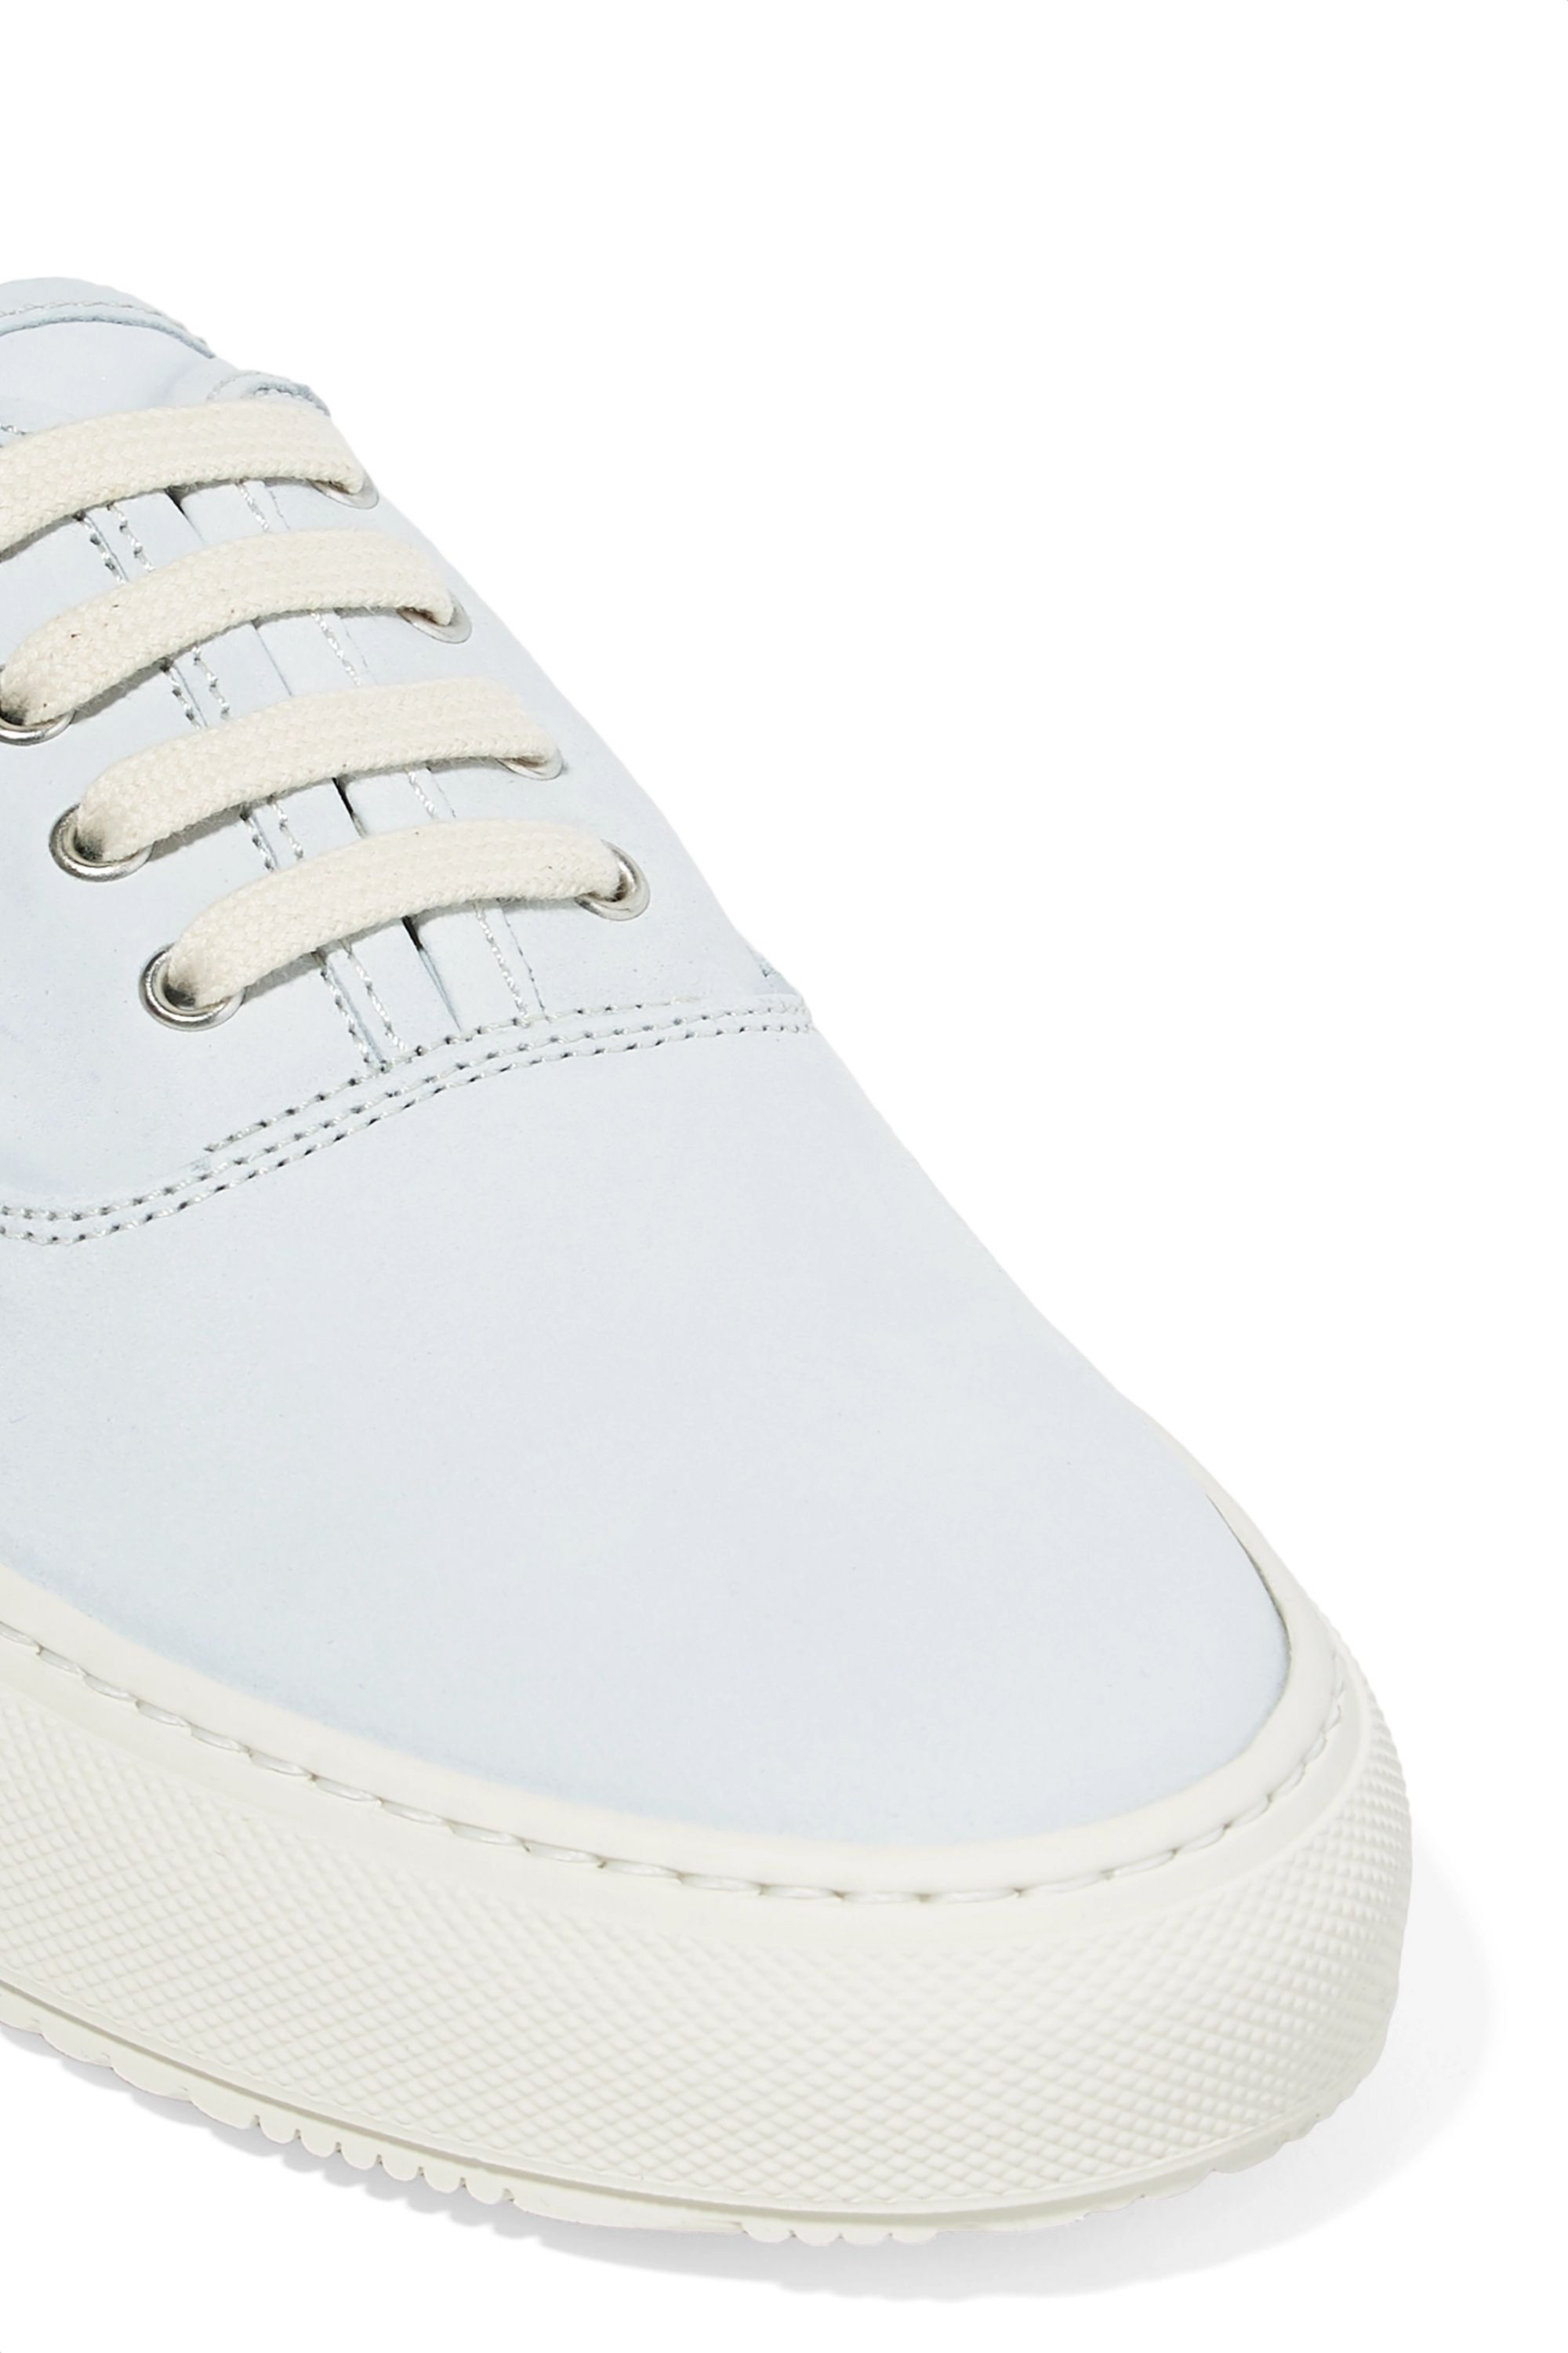 Common Projects Four Hole Sneakers aus Nubukleder